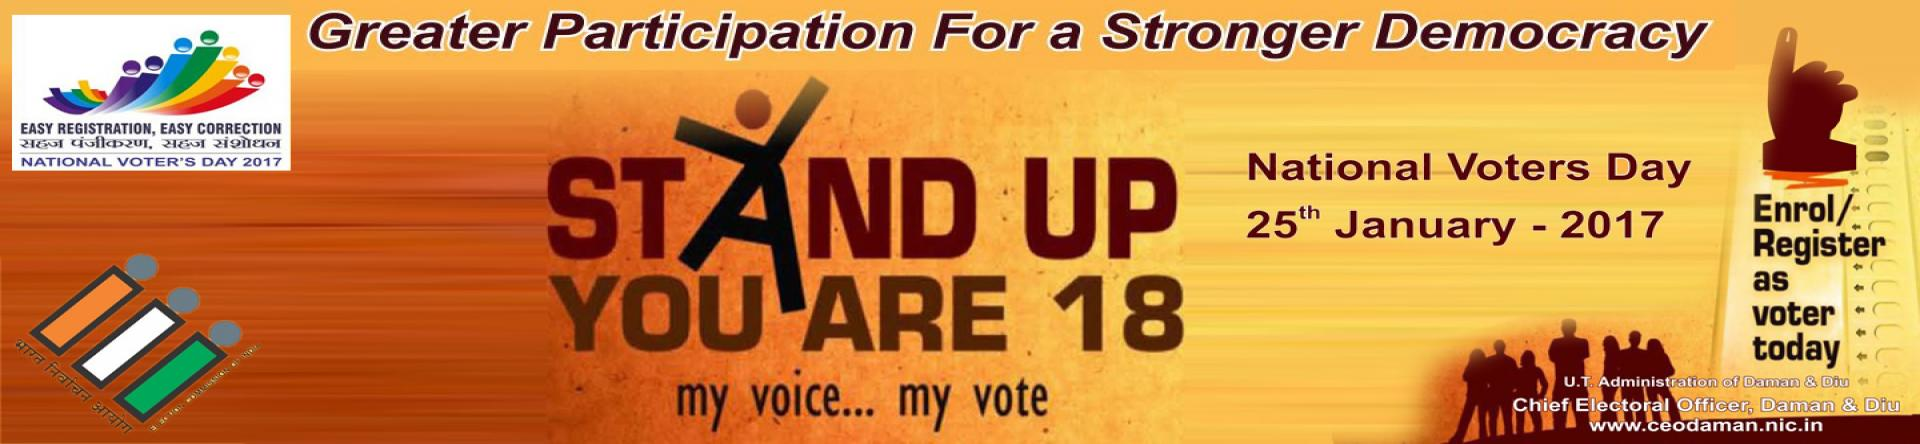 National Voter's Day - Stand up you are 18